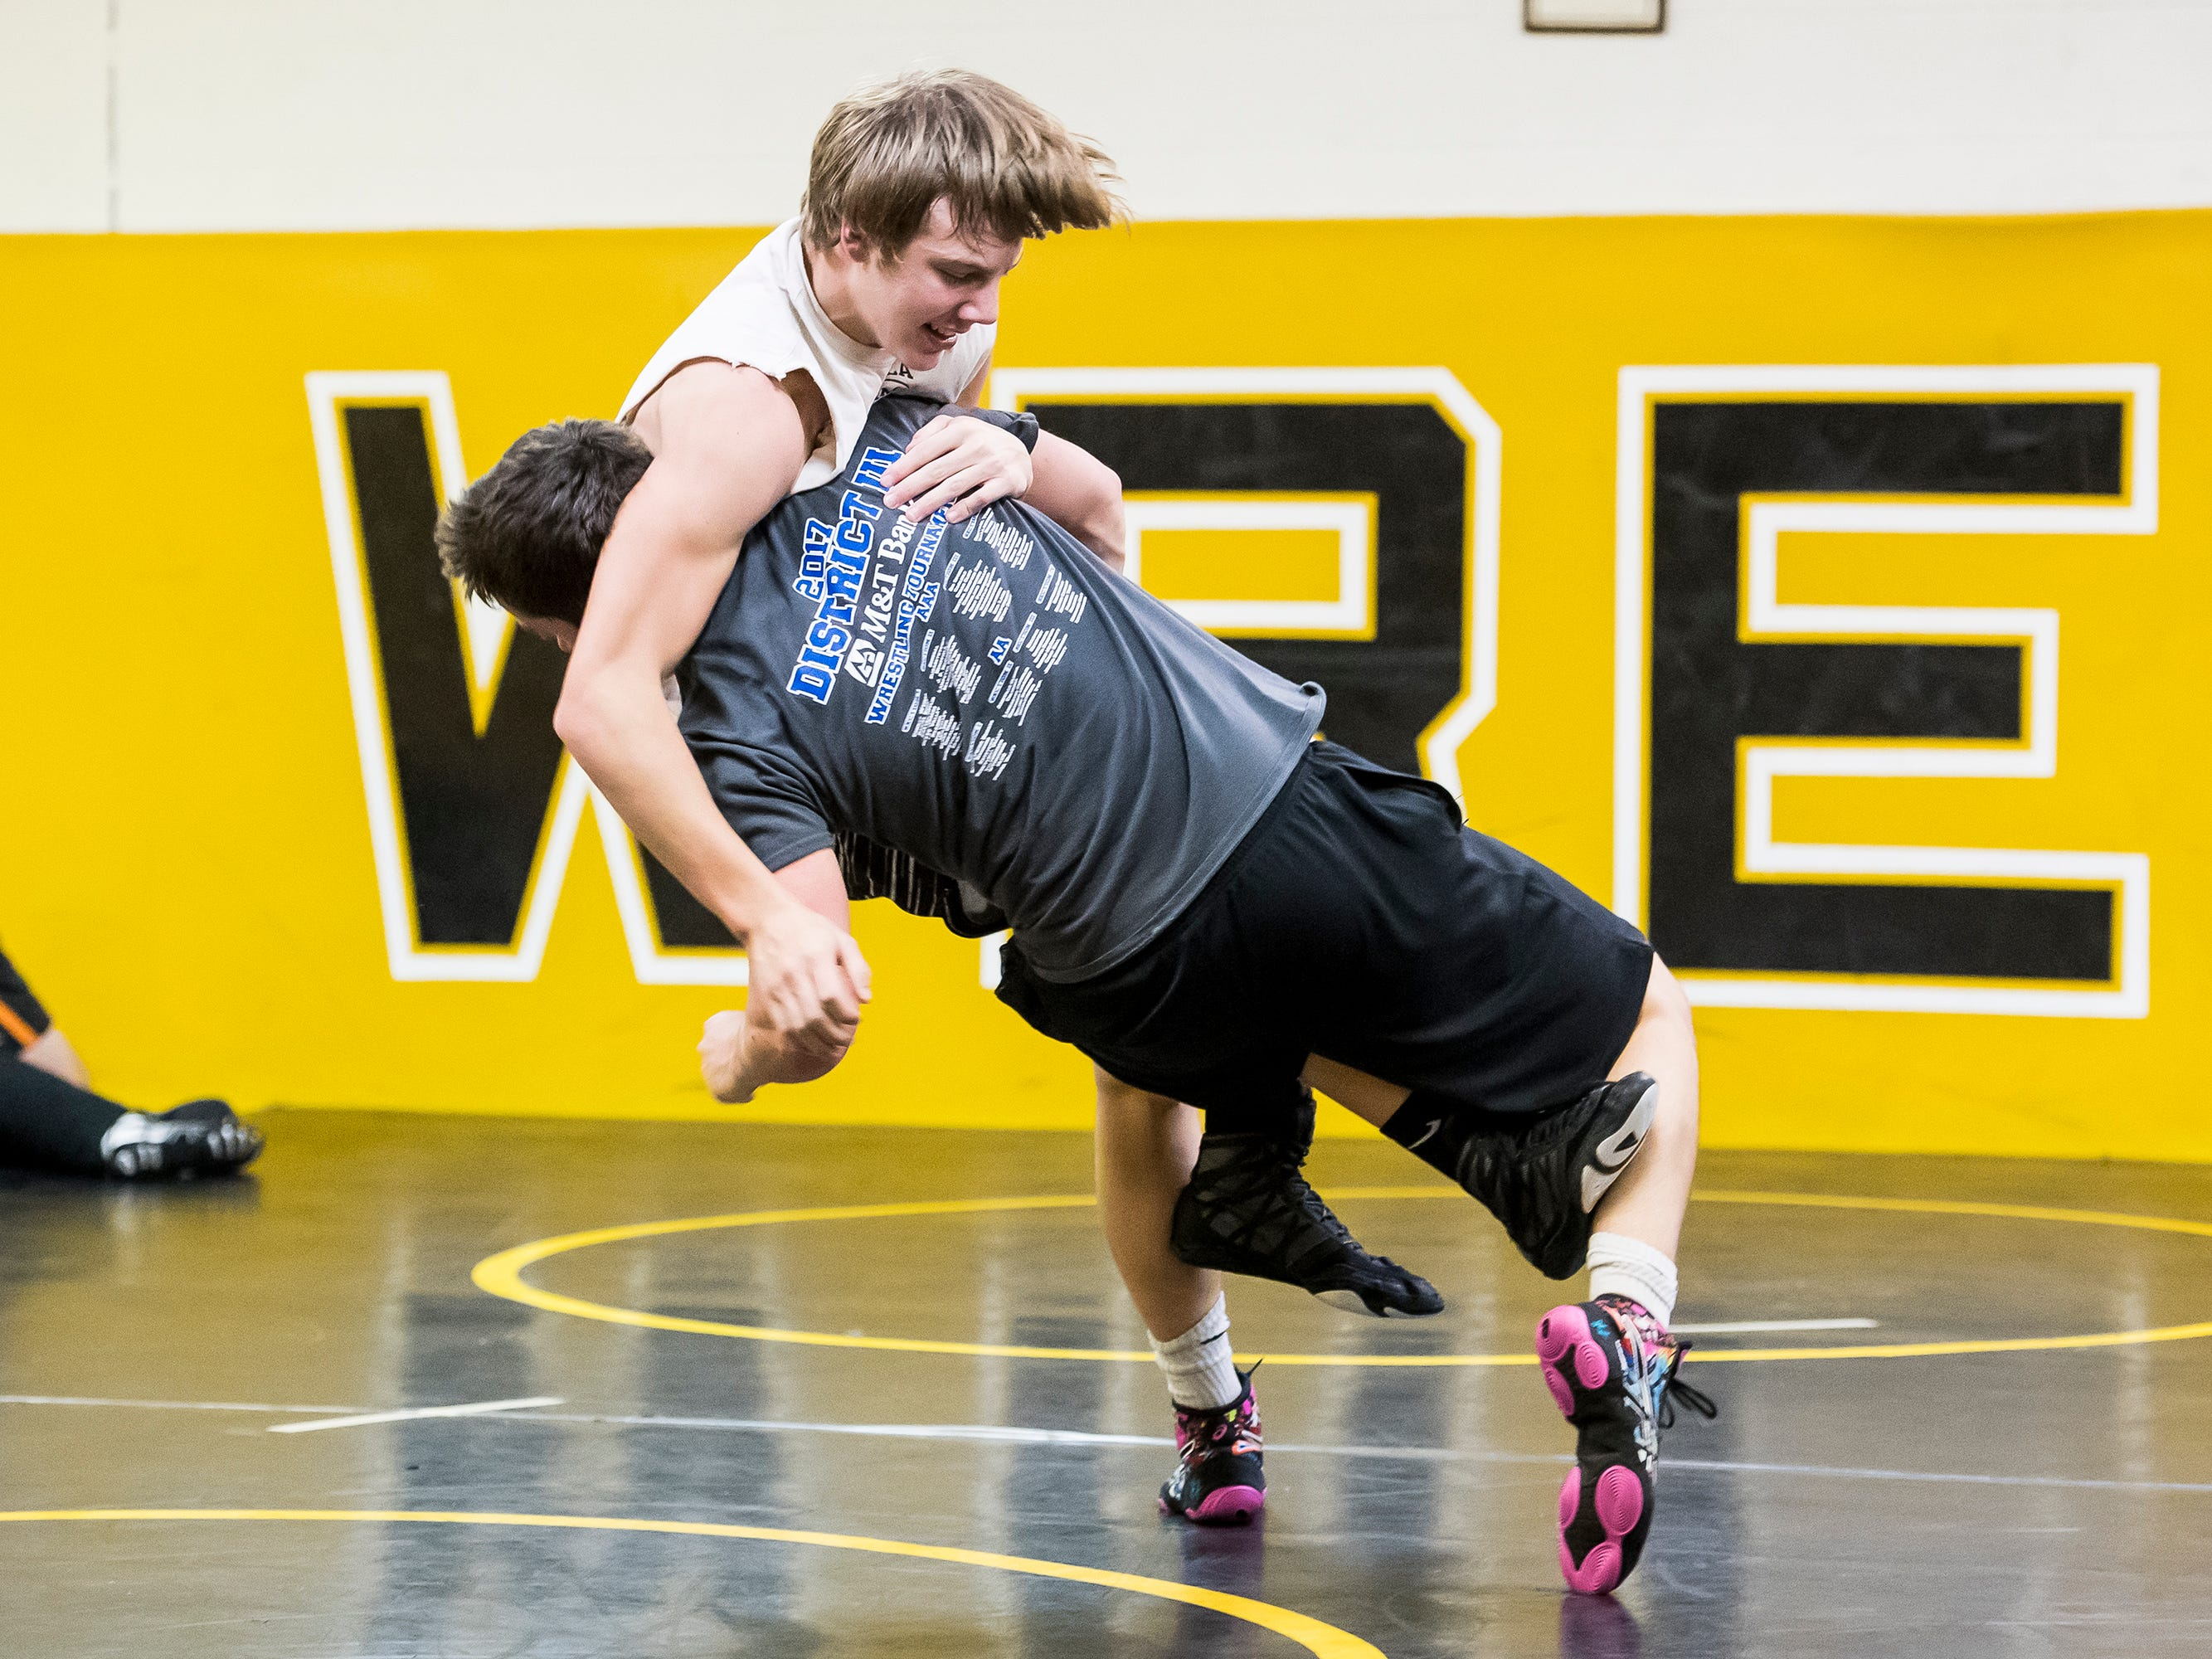 Delon Catholic's Robert Partenza takes down AJ Knobloch during a drill on the first official day of winter sports practice on Friday, November 16, 2018.